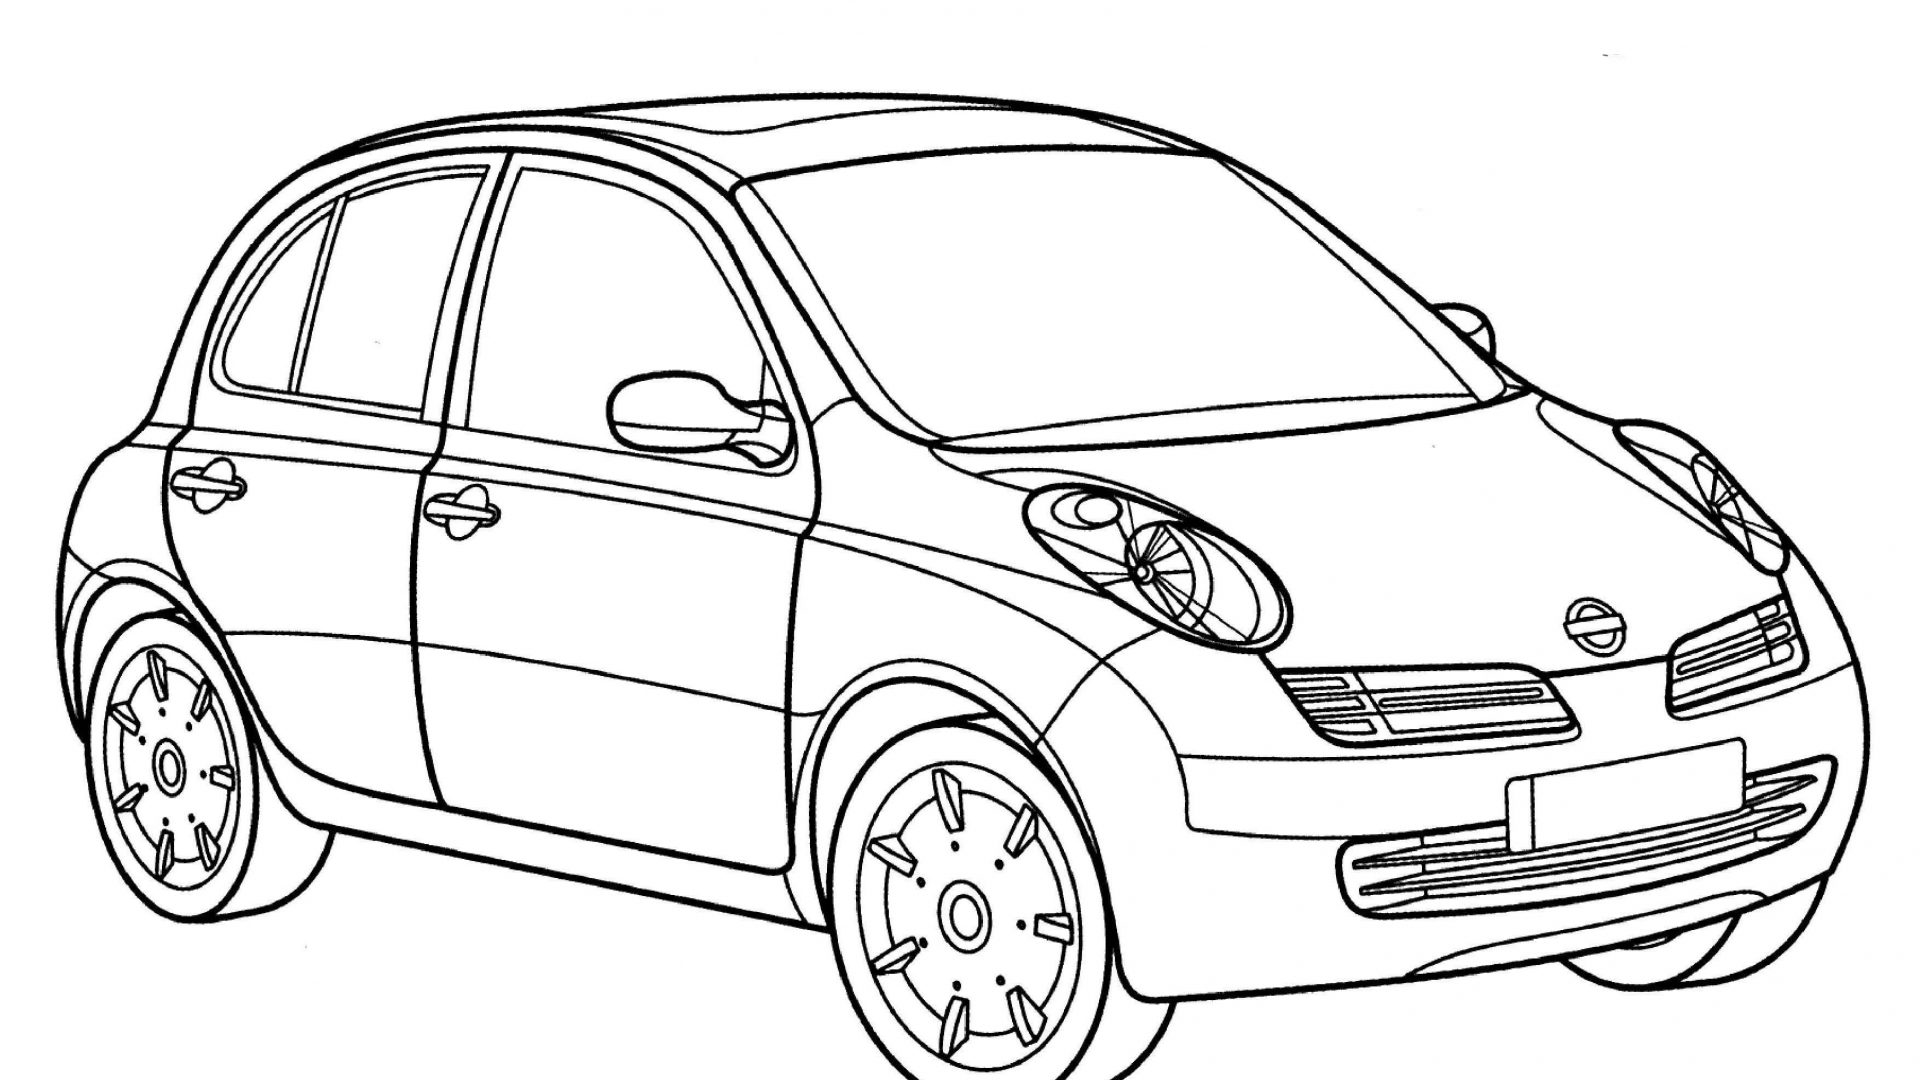 Skyline gtr drawing at getdrawings free for personal use skyline gtr drawing 28 skyline gtr drawing